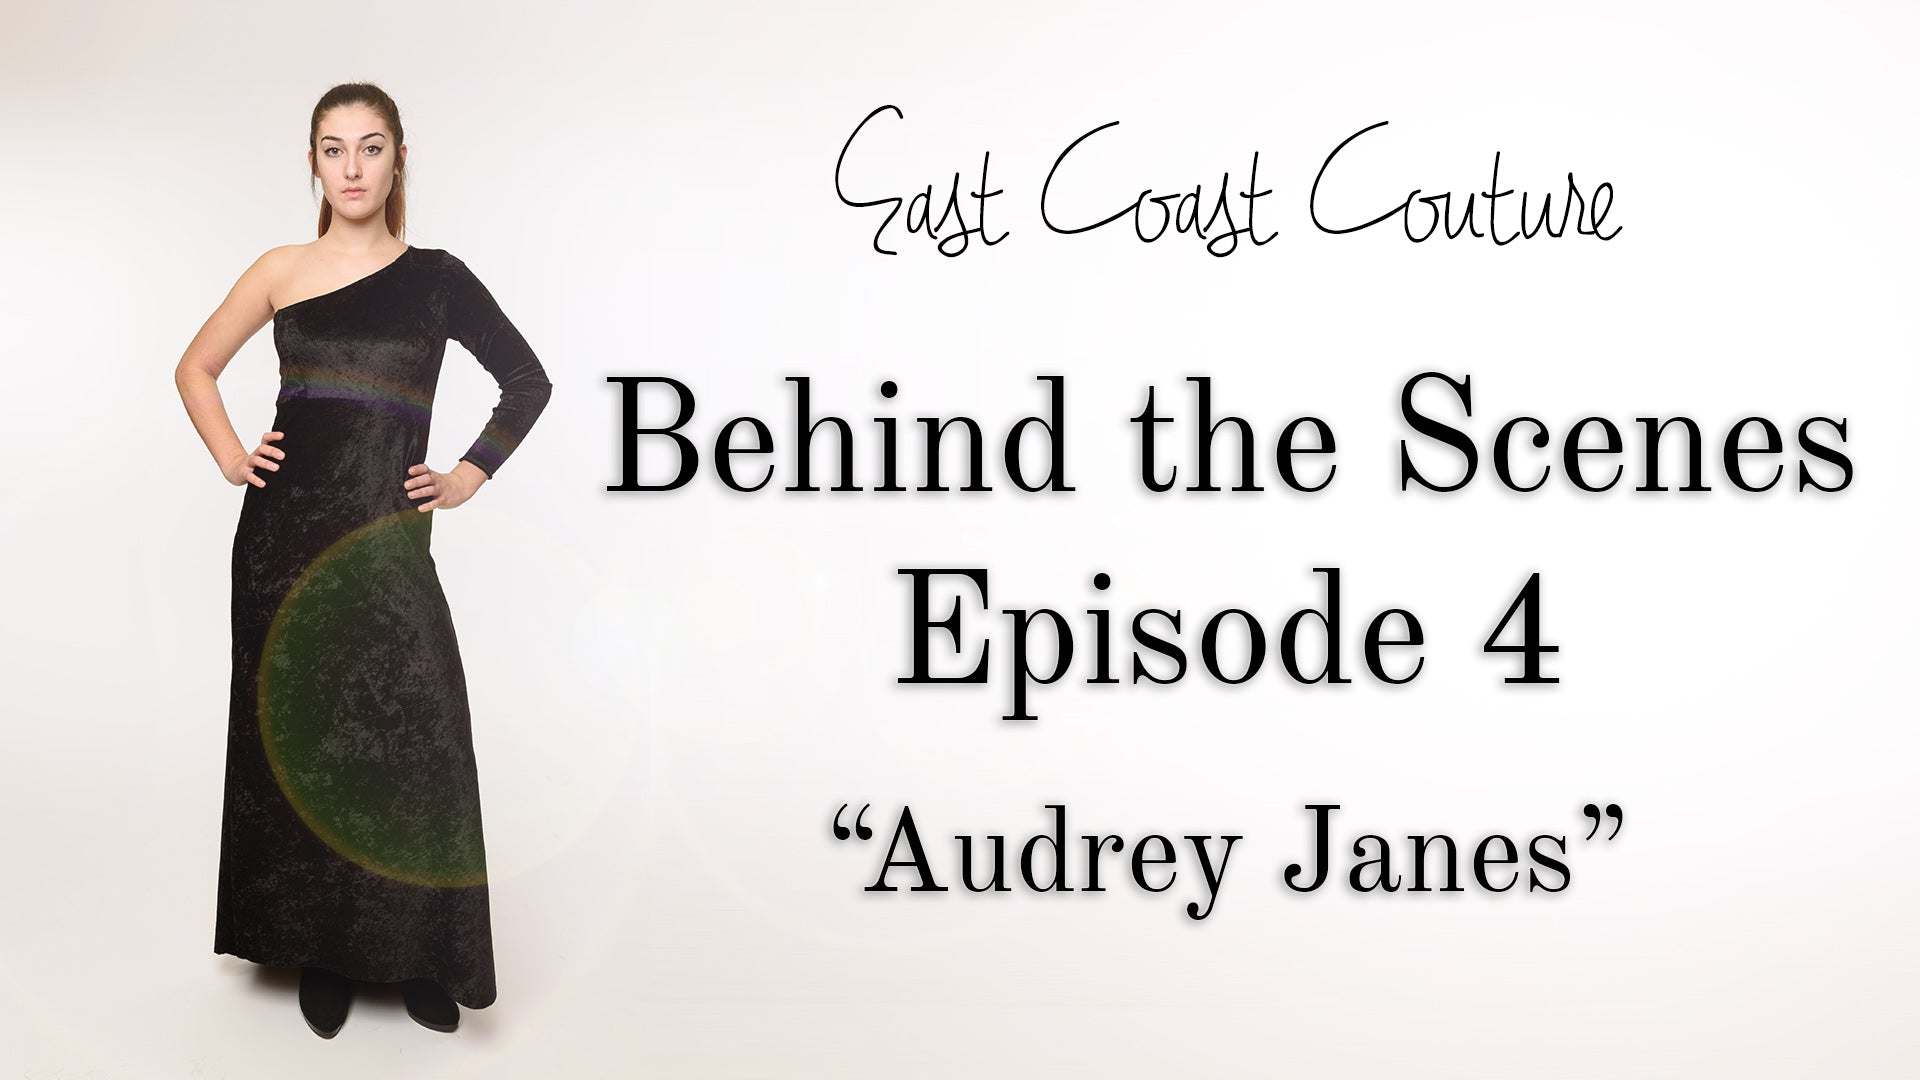 Behind the Scenes Episode 4 - Audrey Janes